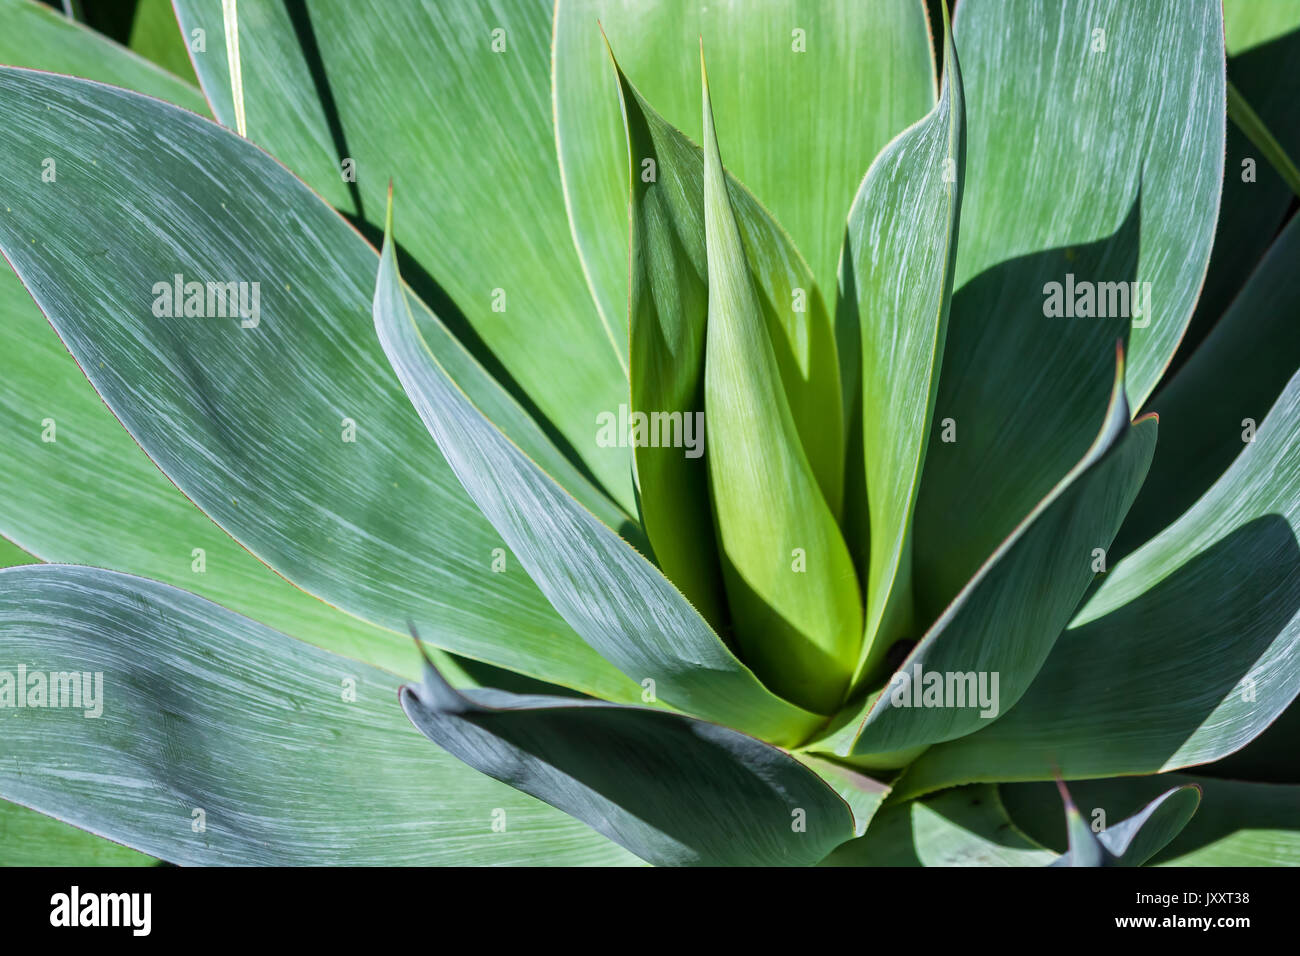 Close up of a species of agave, Agave attenuata - Stock Image